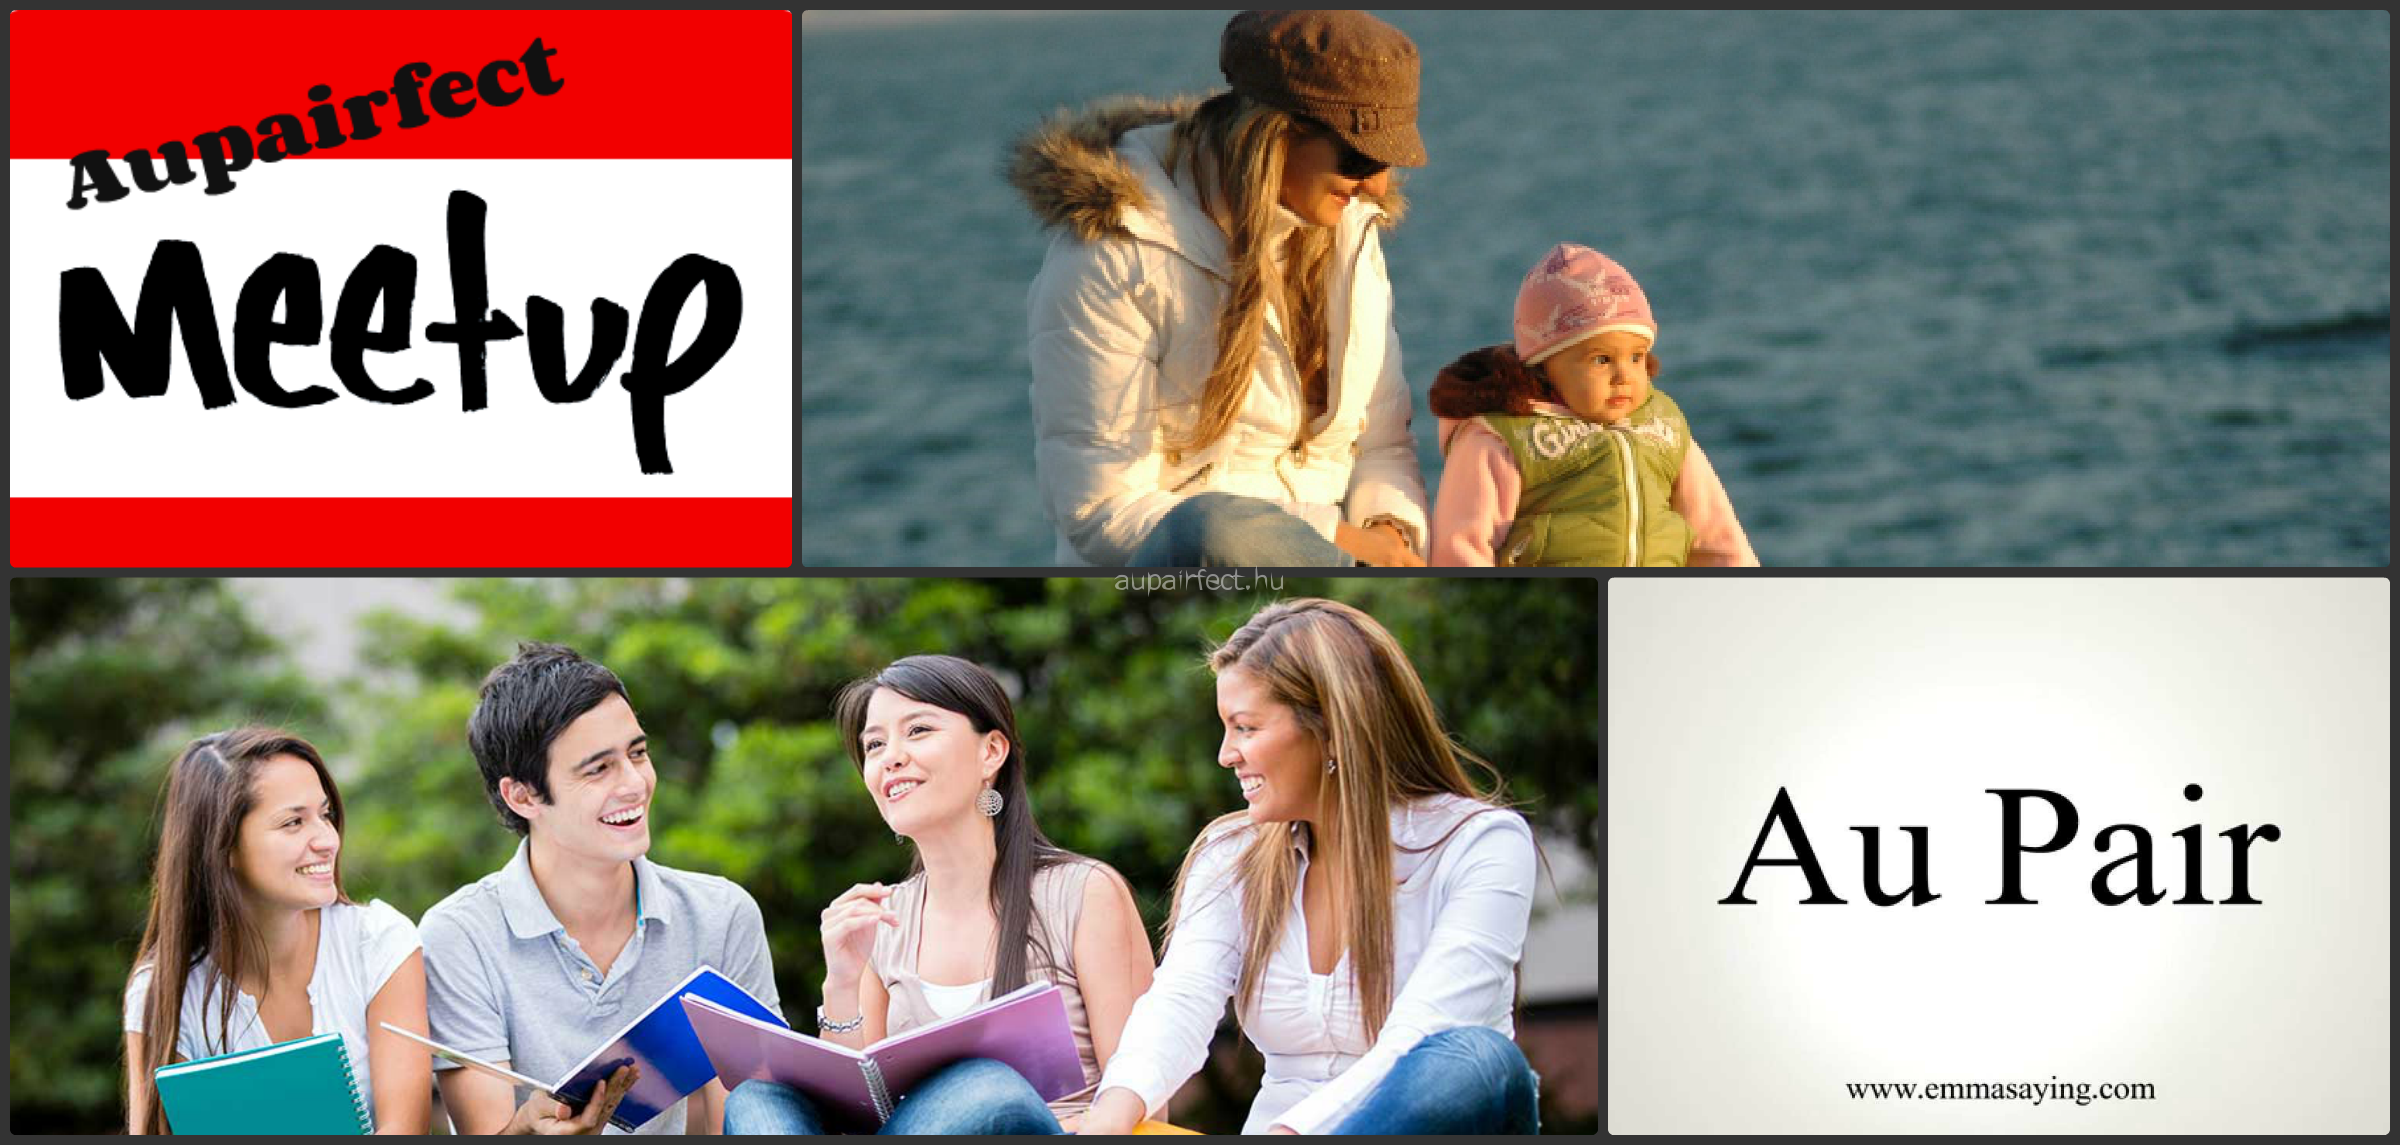 Aupairfect au pair Meetup - Be the part of it!